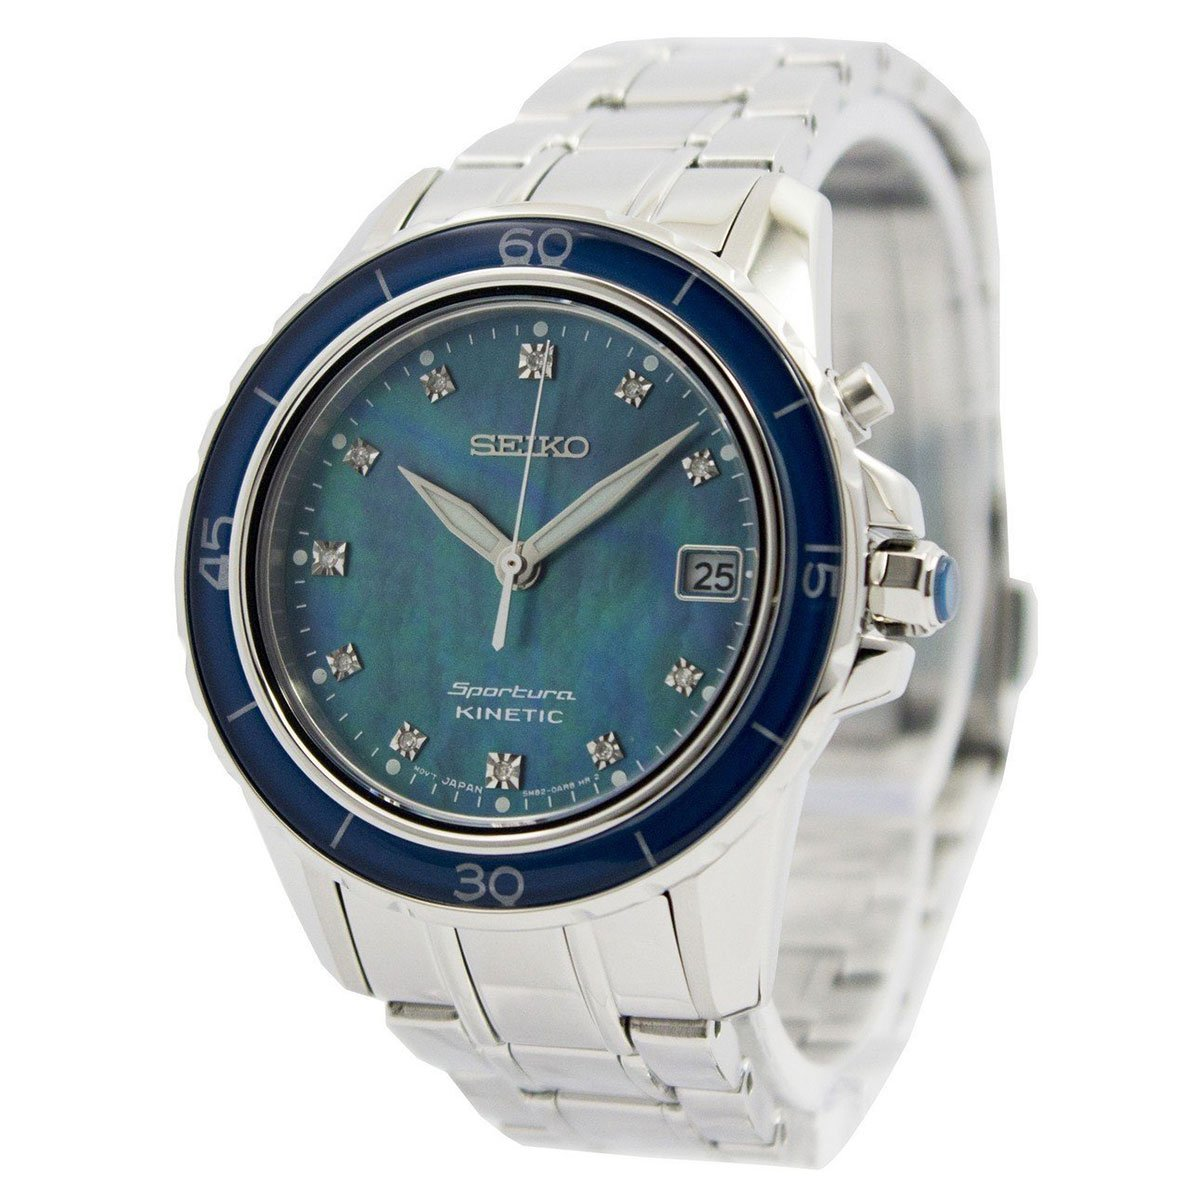 Seiko Ladies KINETIC Analog Business Watch (Imported) SKA873P1 by Seiko Watches